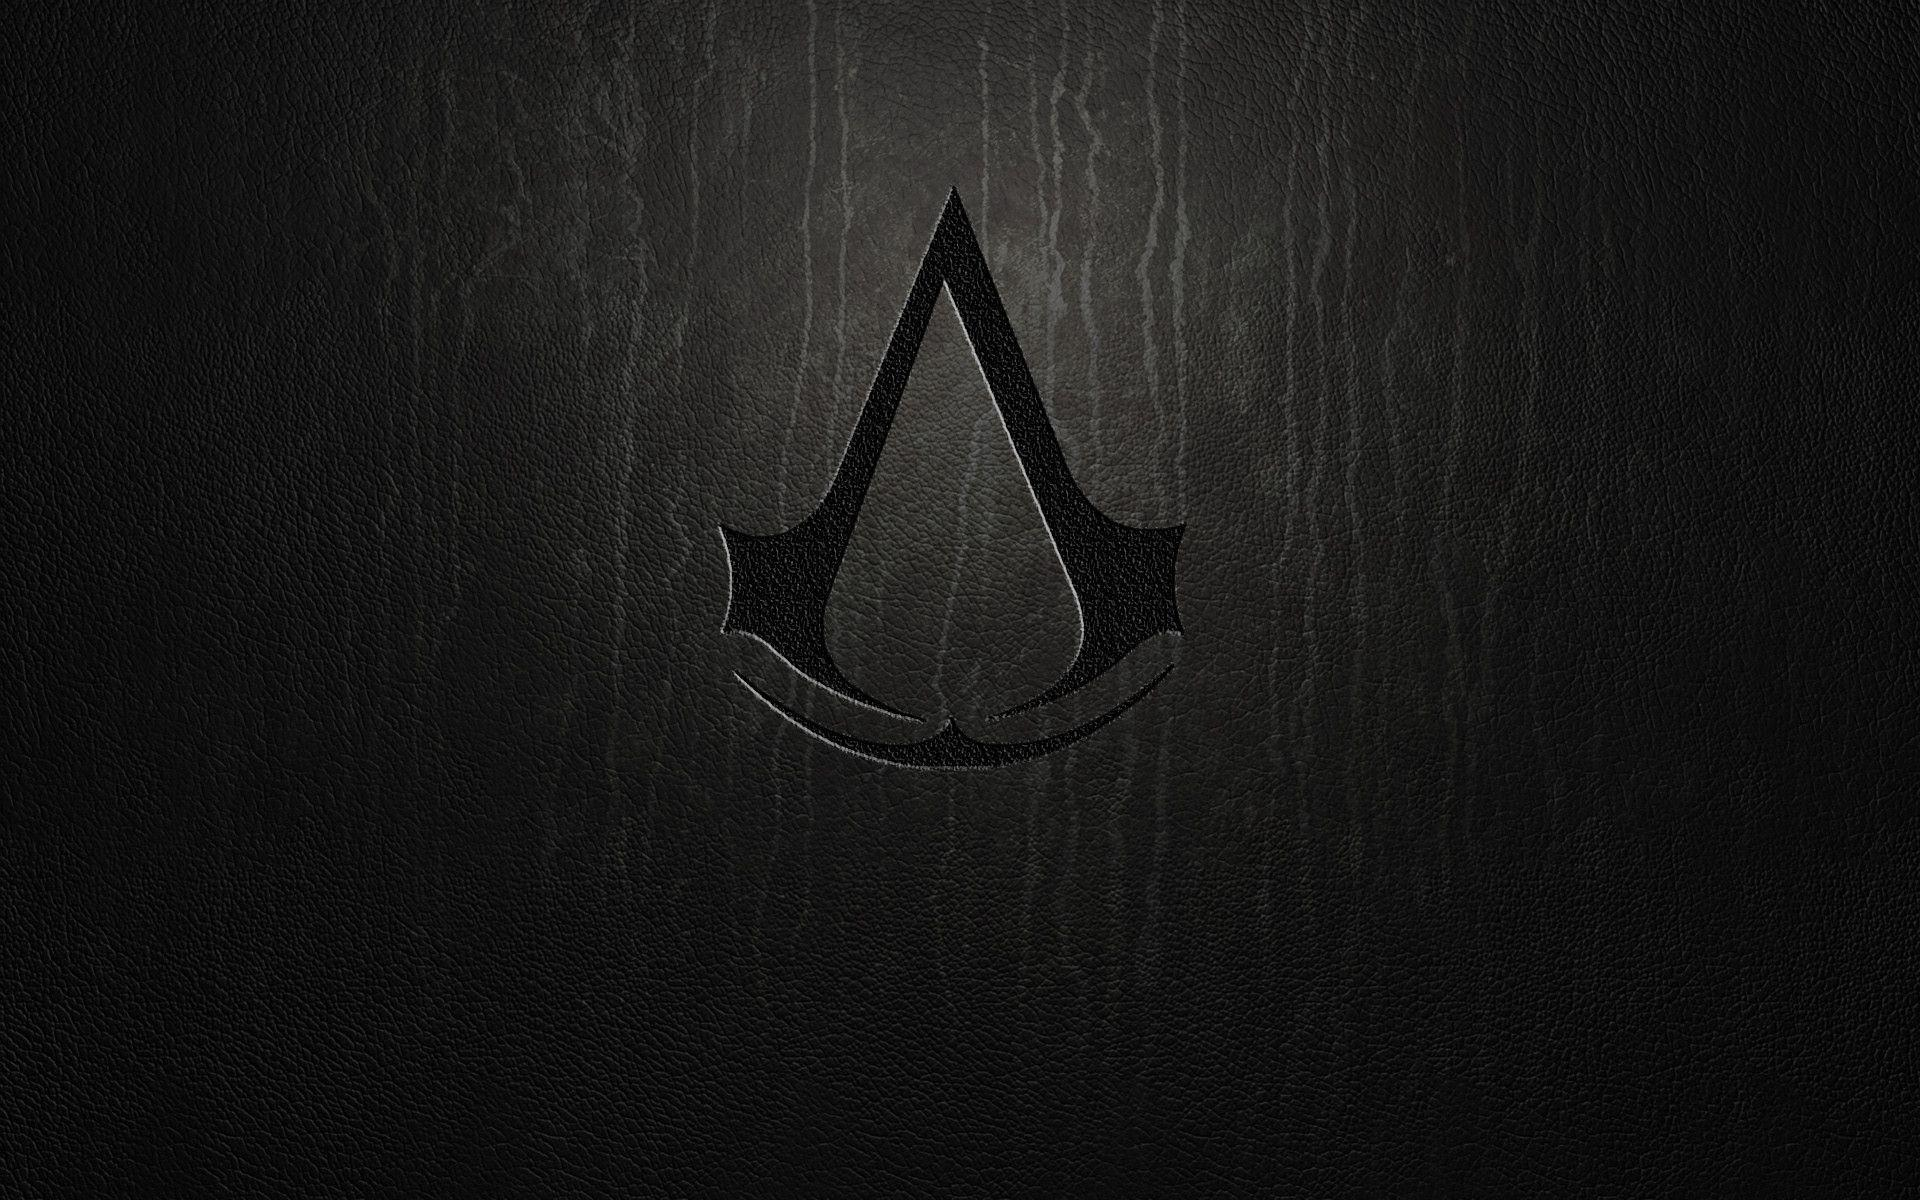 Assassin&Creed Wallpapers by Kaos456